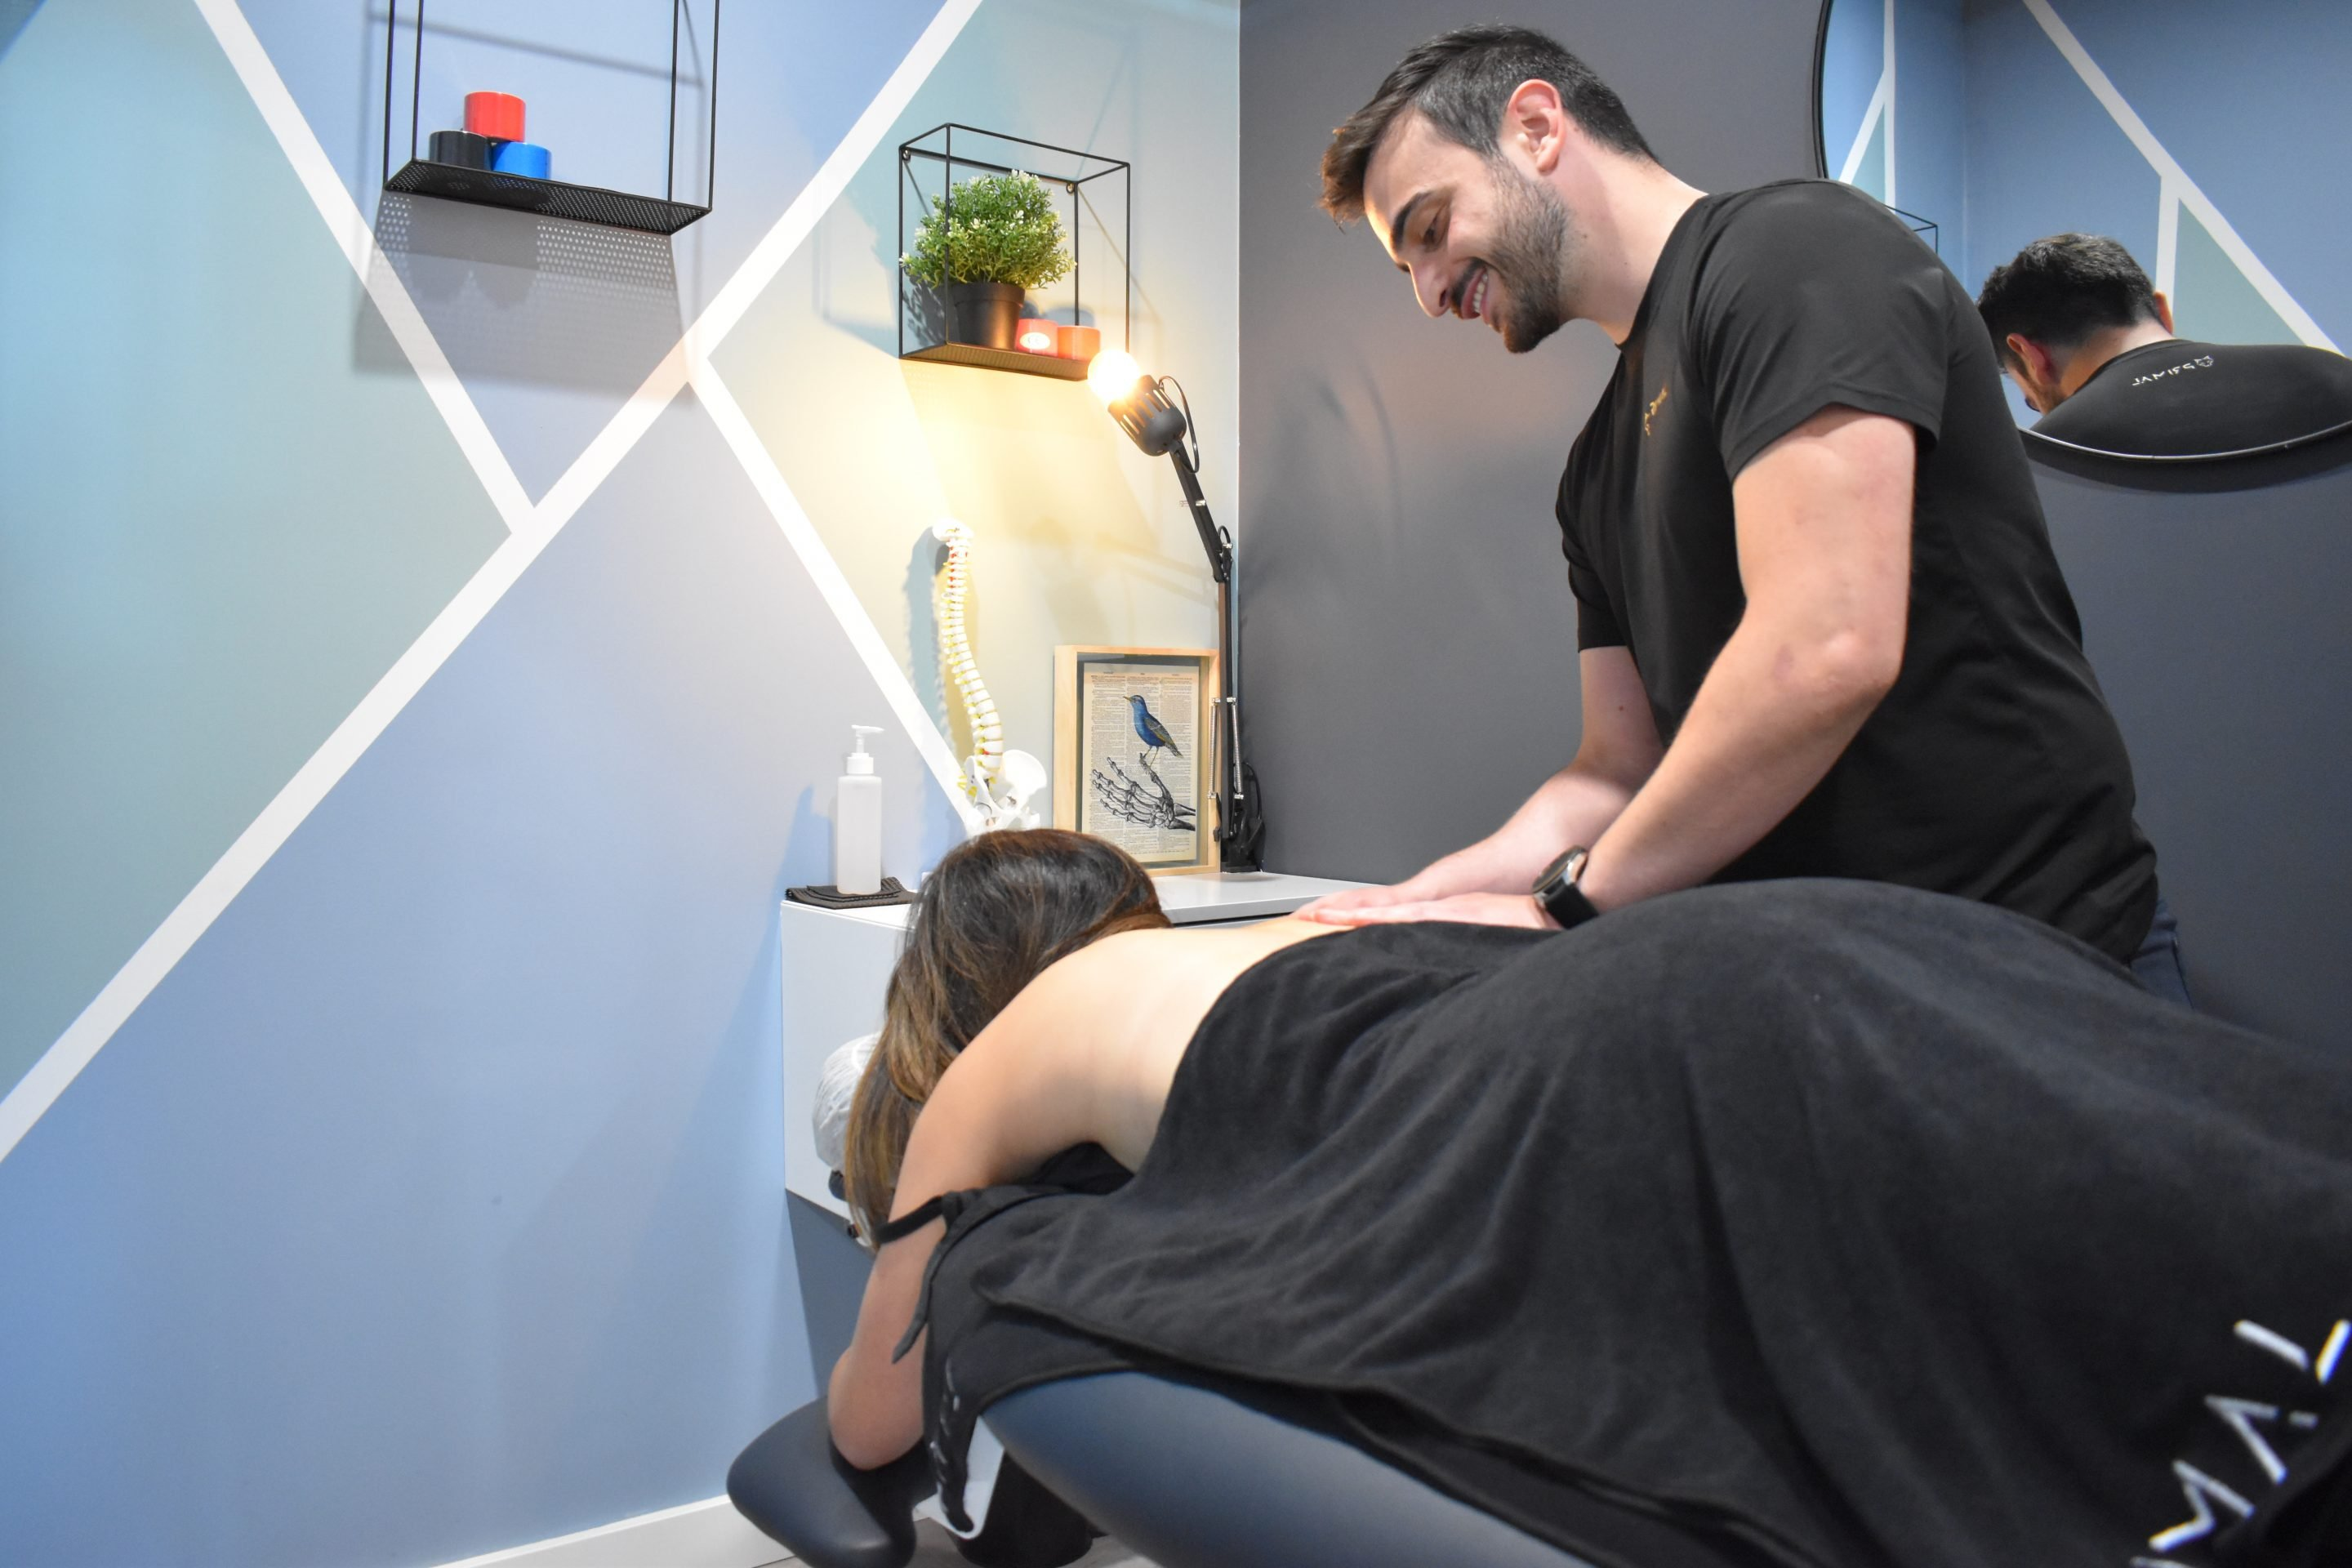 You will receive a thorough assessment and plan with your therapist to address your issues. Our massage services are claimable with private health insurance.